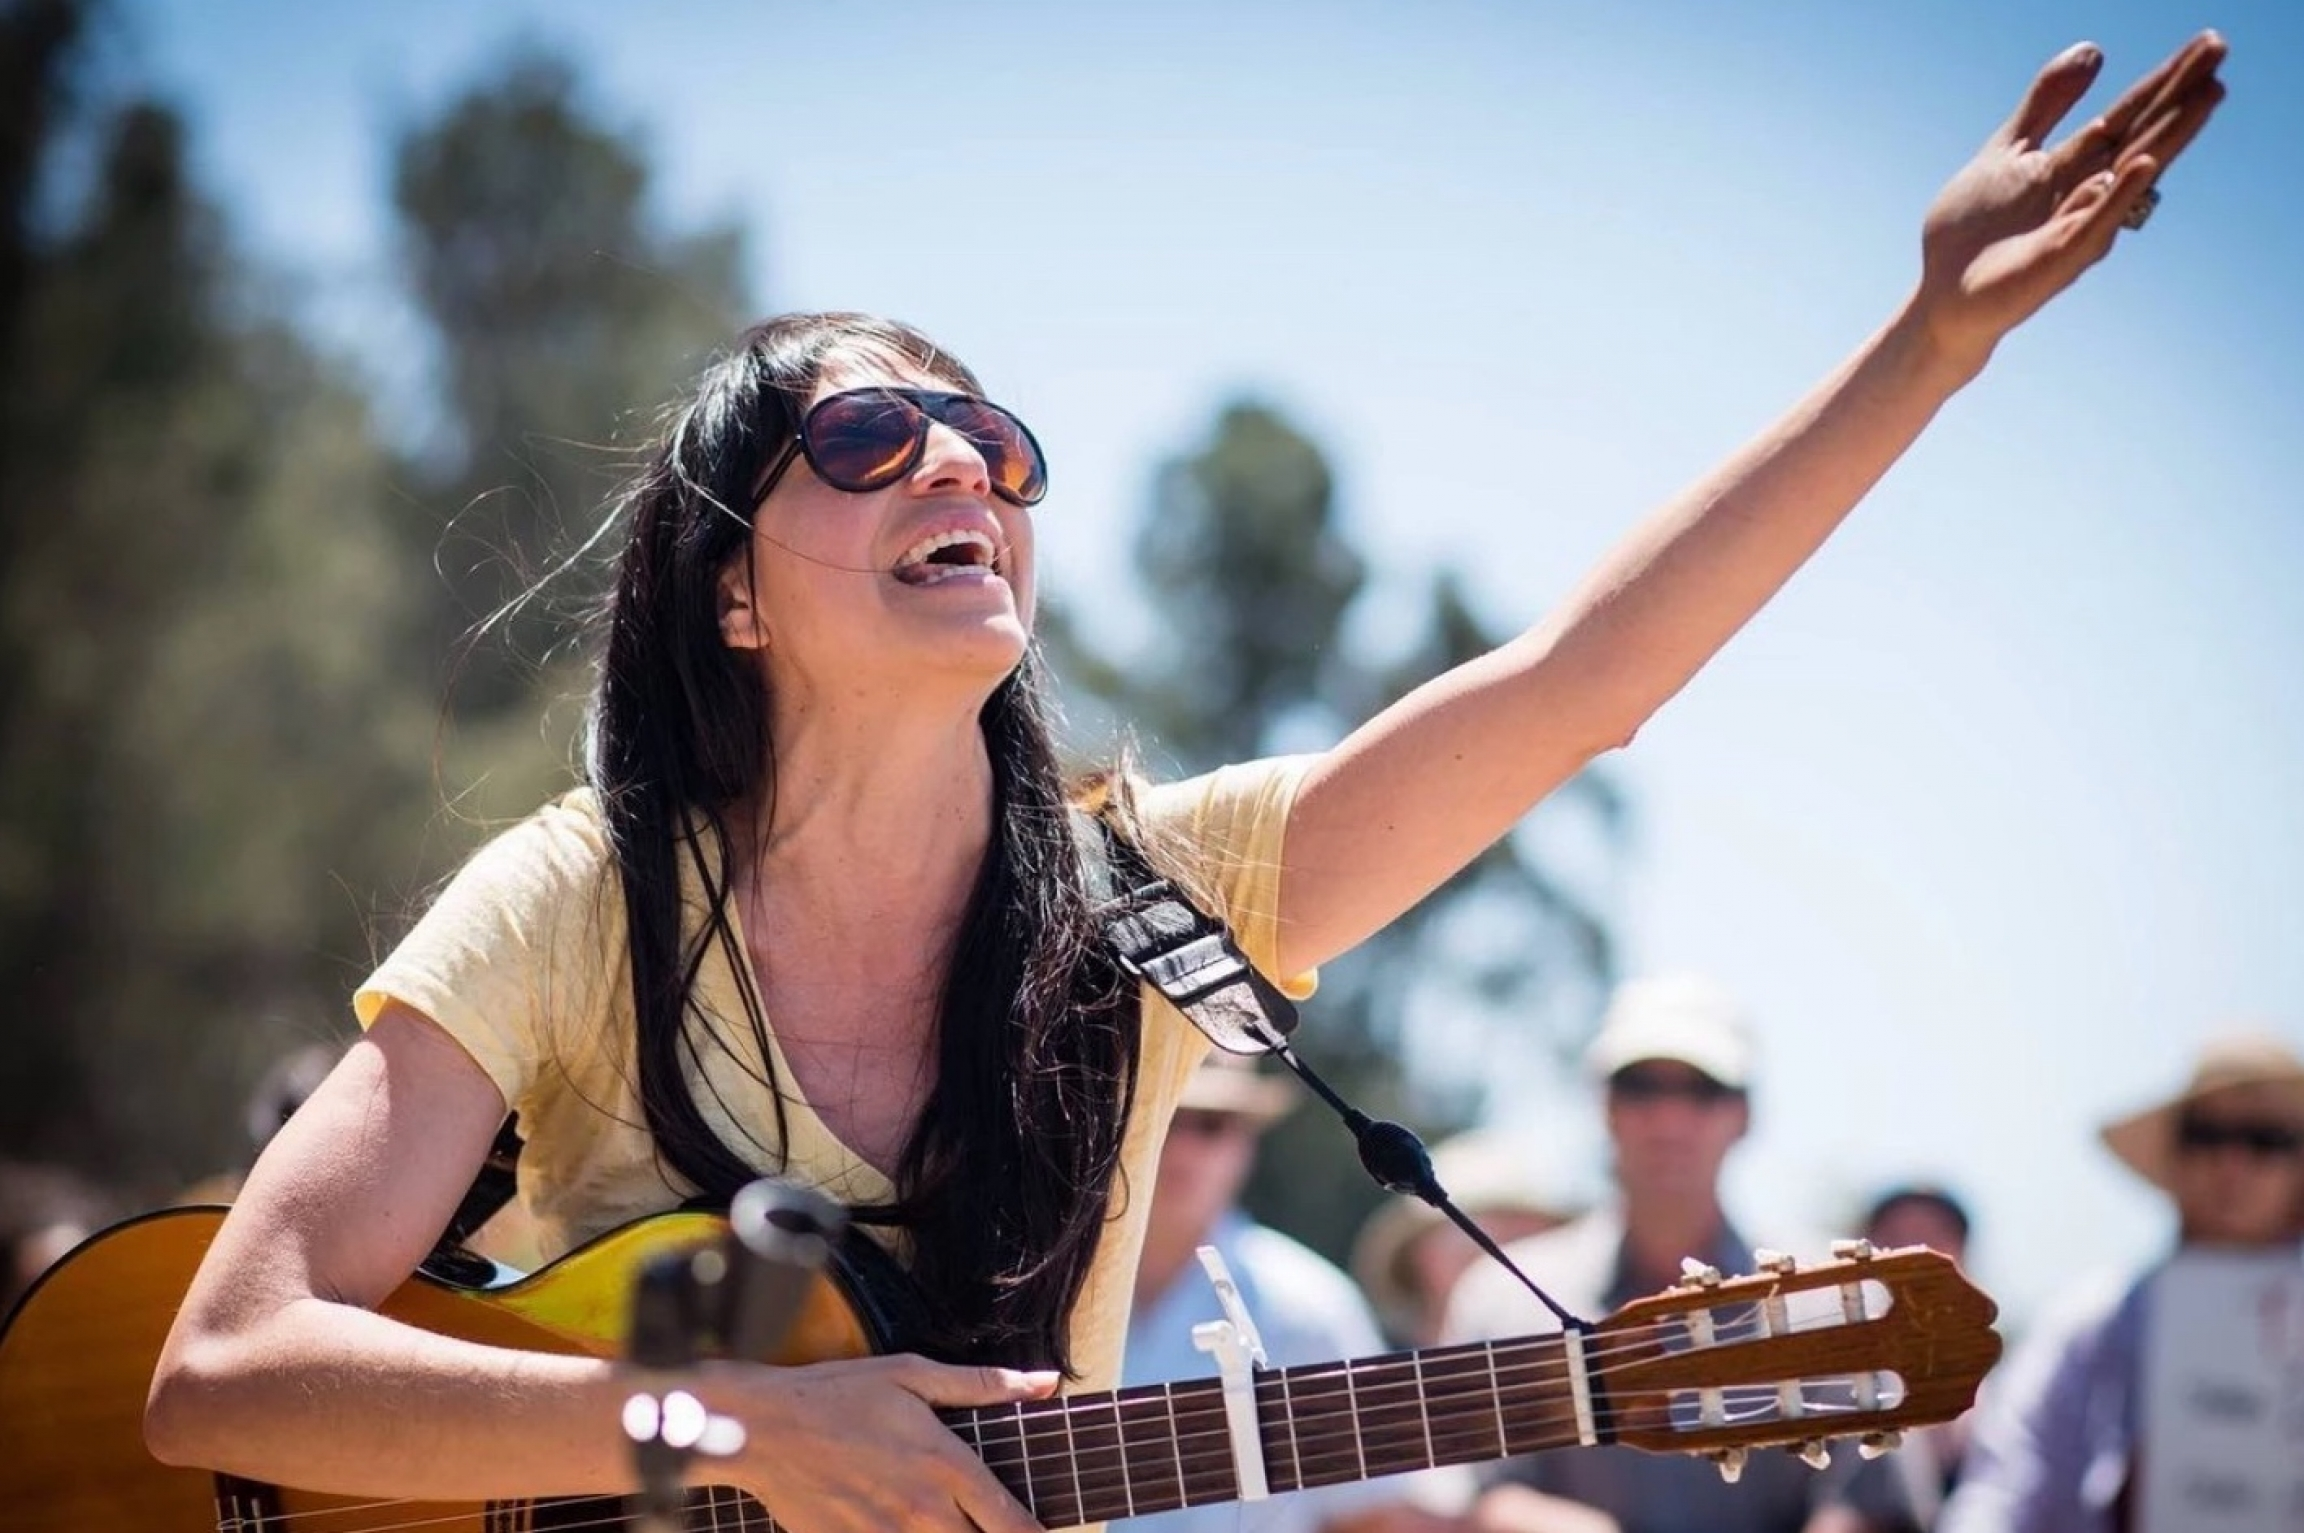 A woman wearing sunglasses holds a guitar in one hand while gesturing to the open blue sky with the other hand.